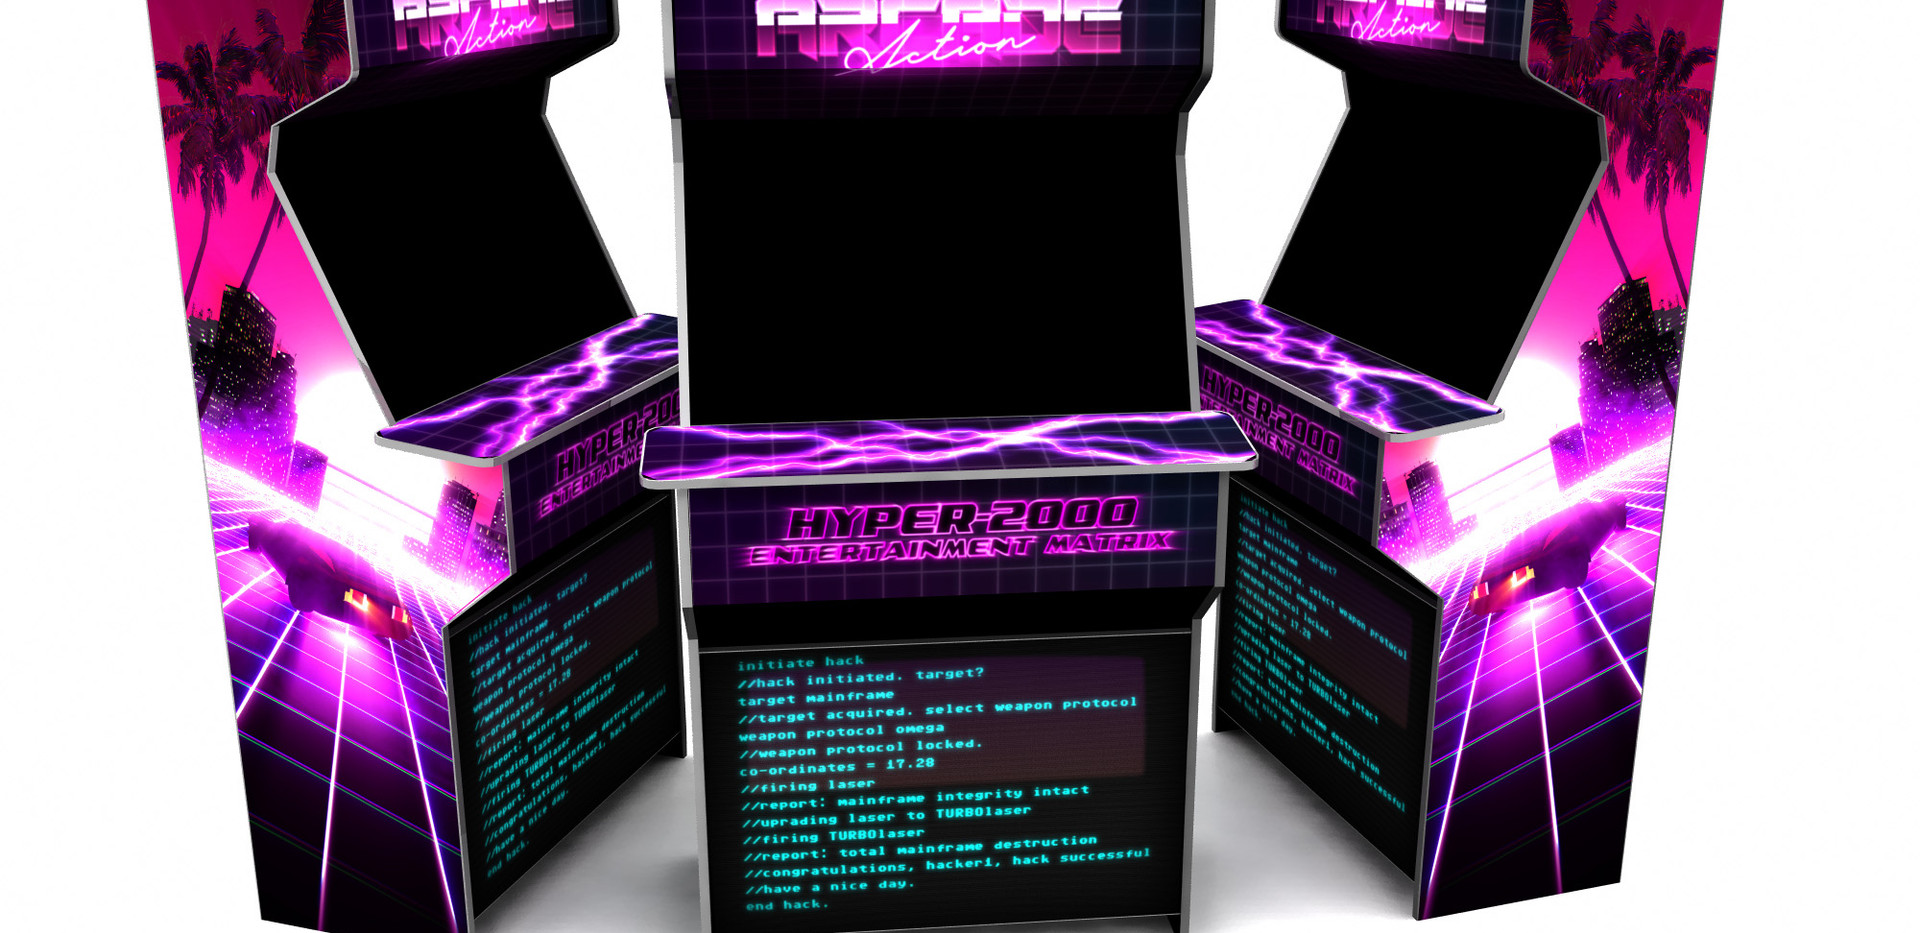 vaoprwave 80's arcade machine